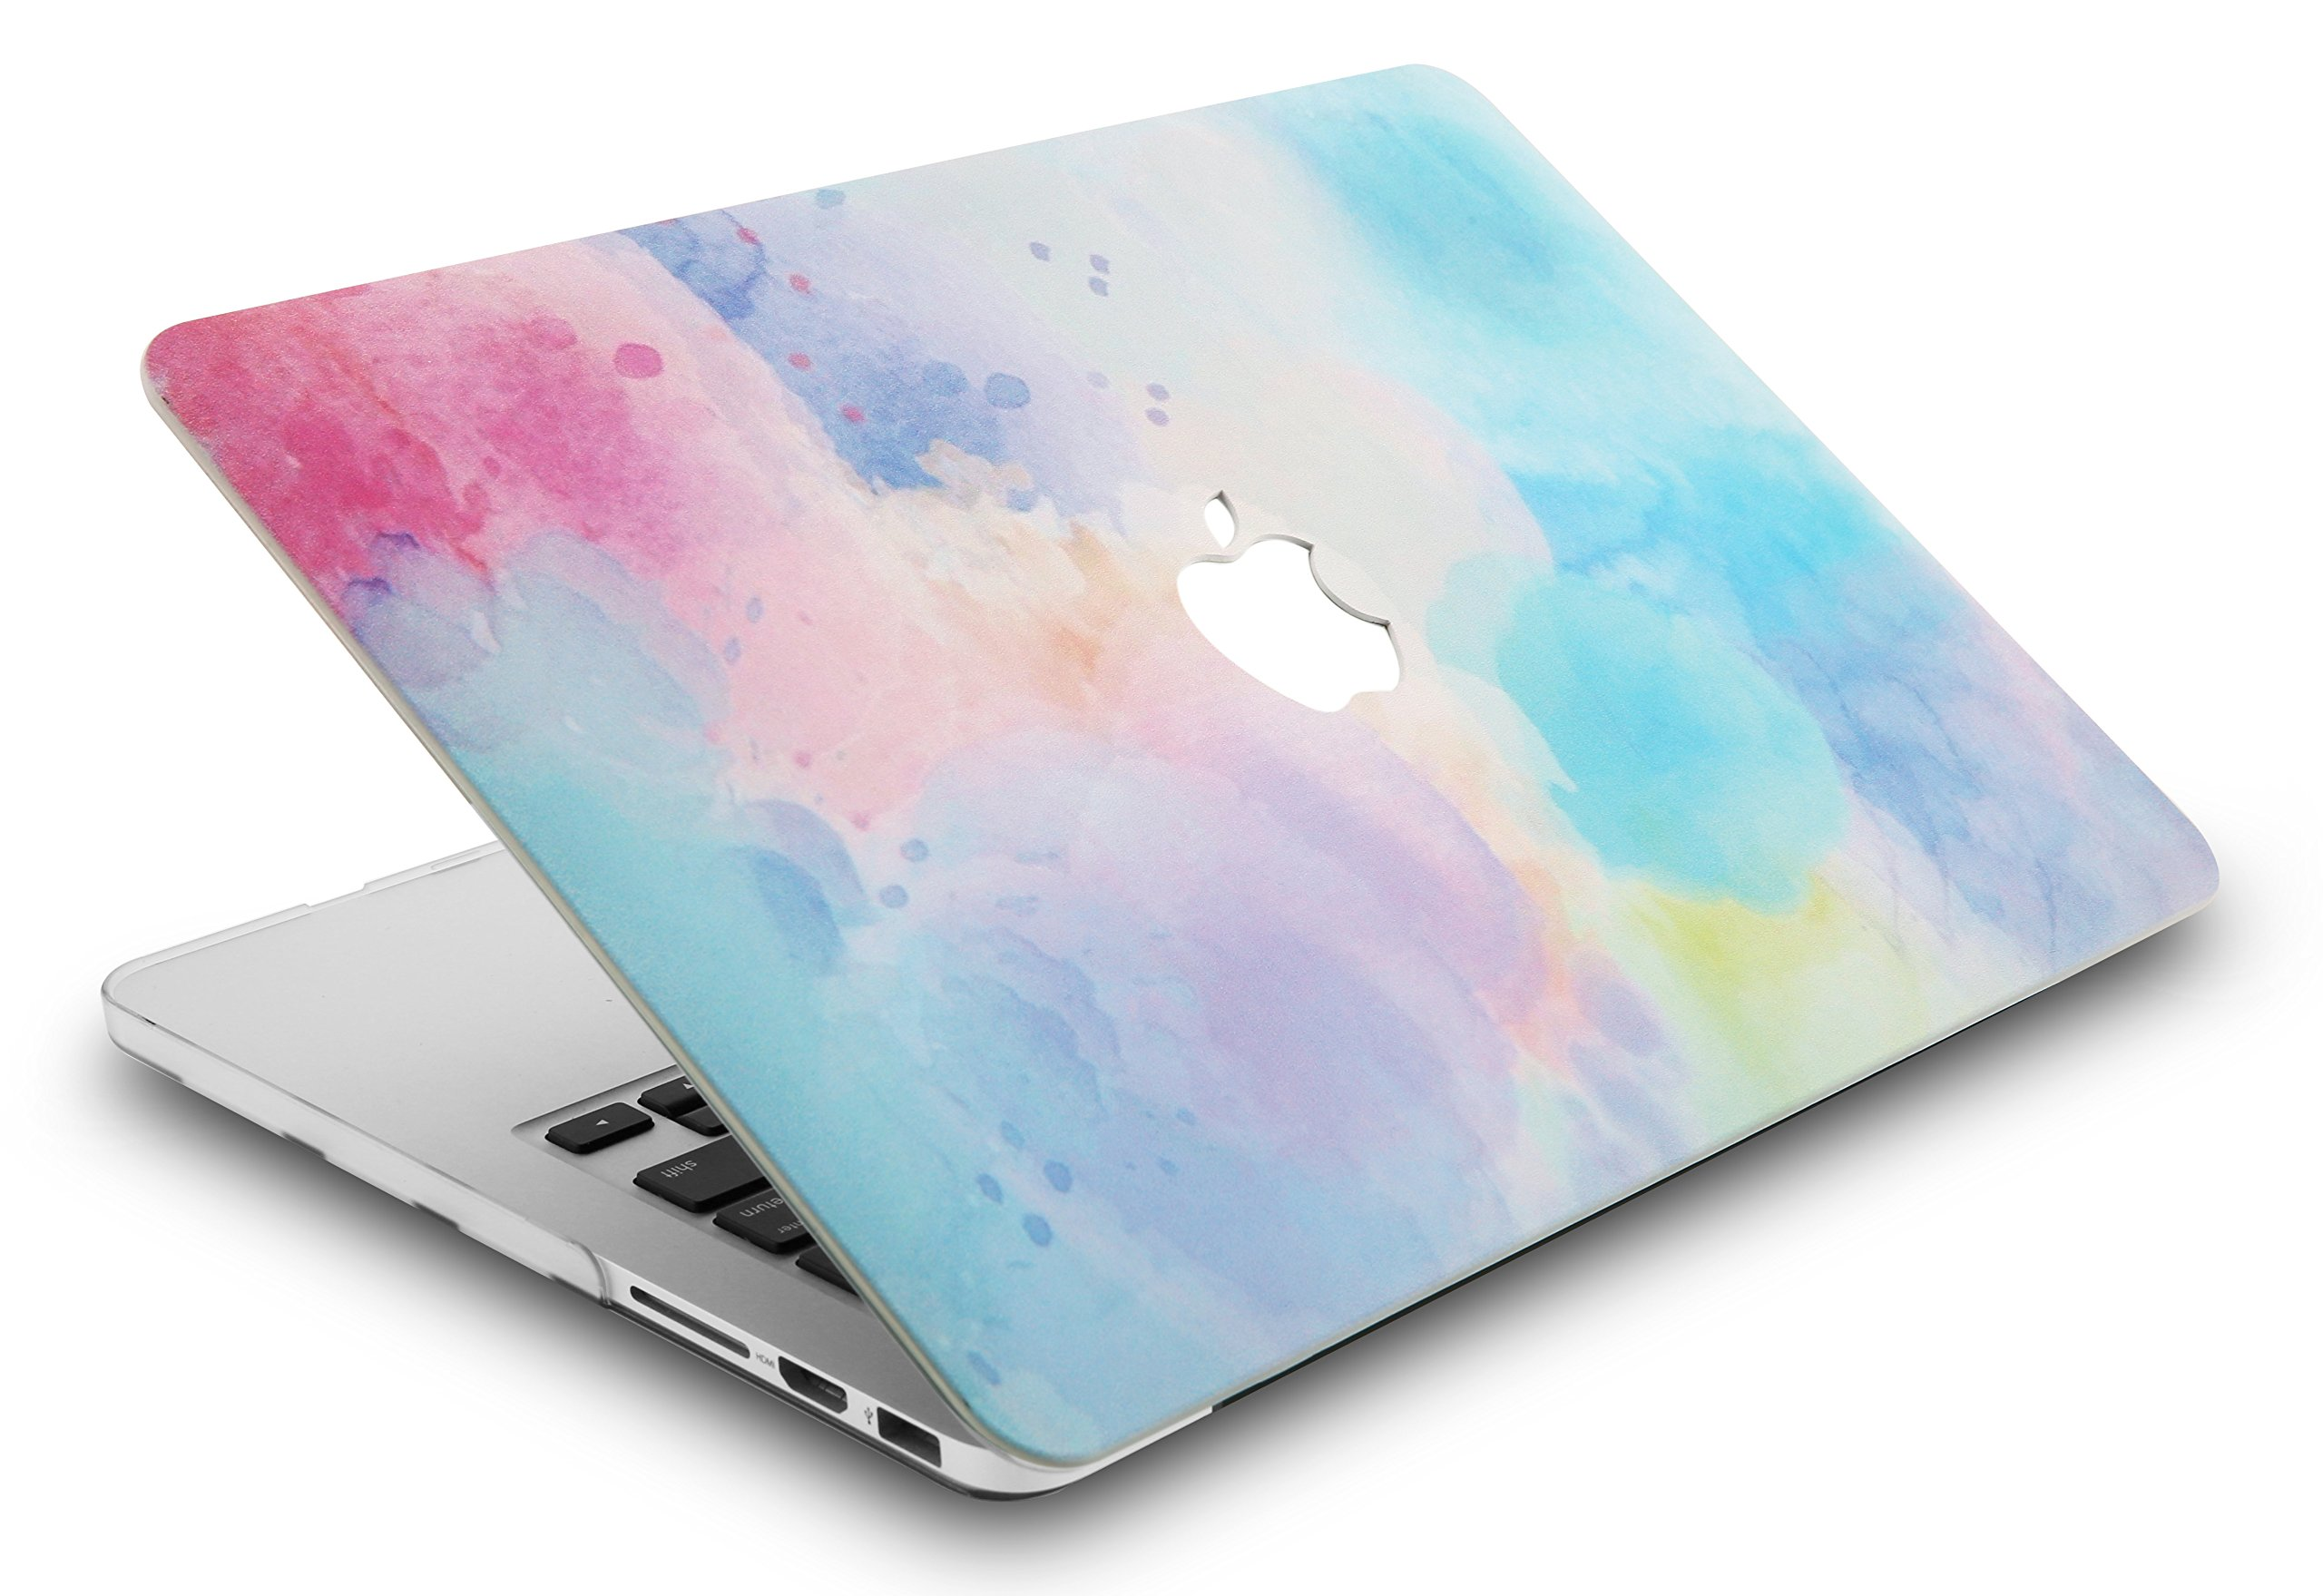 KEC Laptop Case for MacBook Air 13'' w/ Keyboard Cover + Sleeve Plastic Hard Shell Case A1466/A1369  3 in Bundle (Rainbow Mist 2)  by KEC (Image #3)